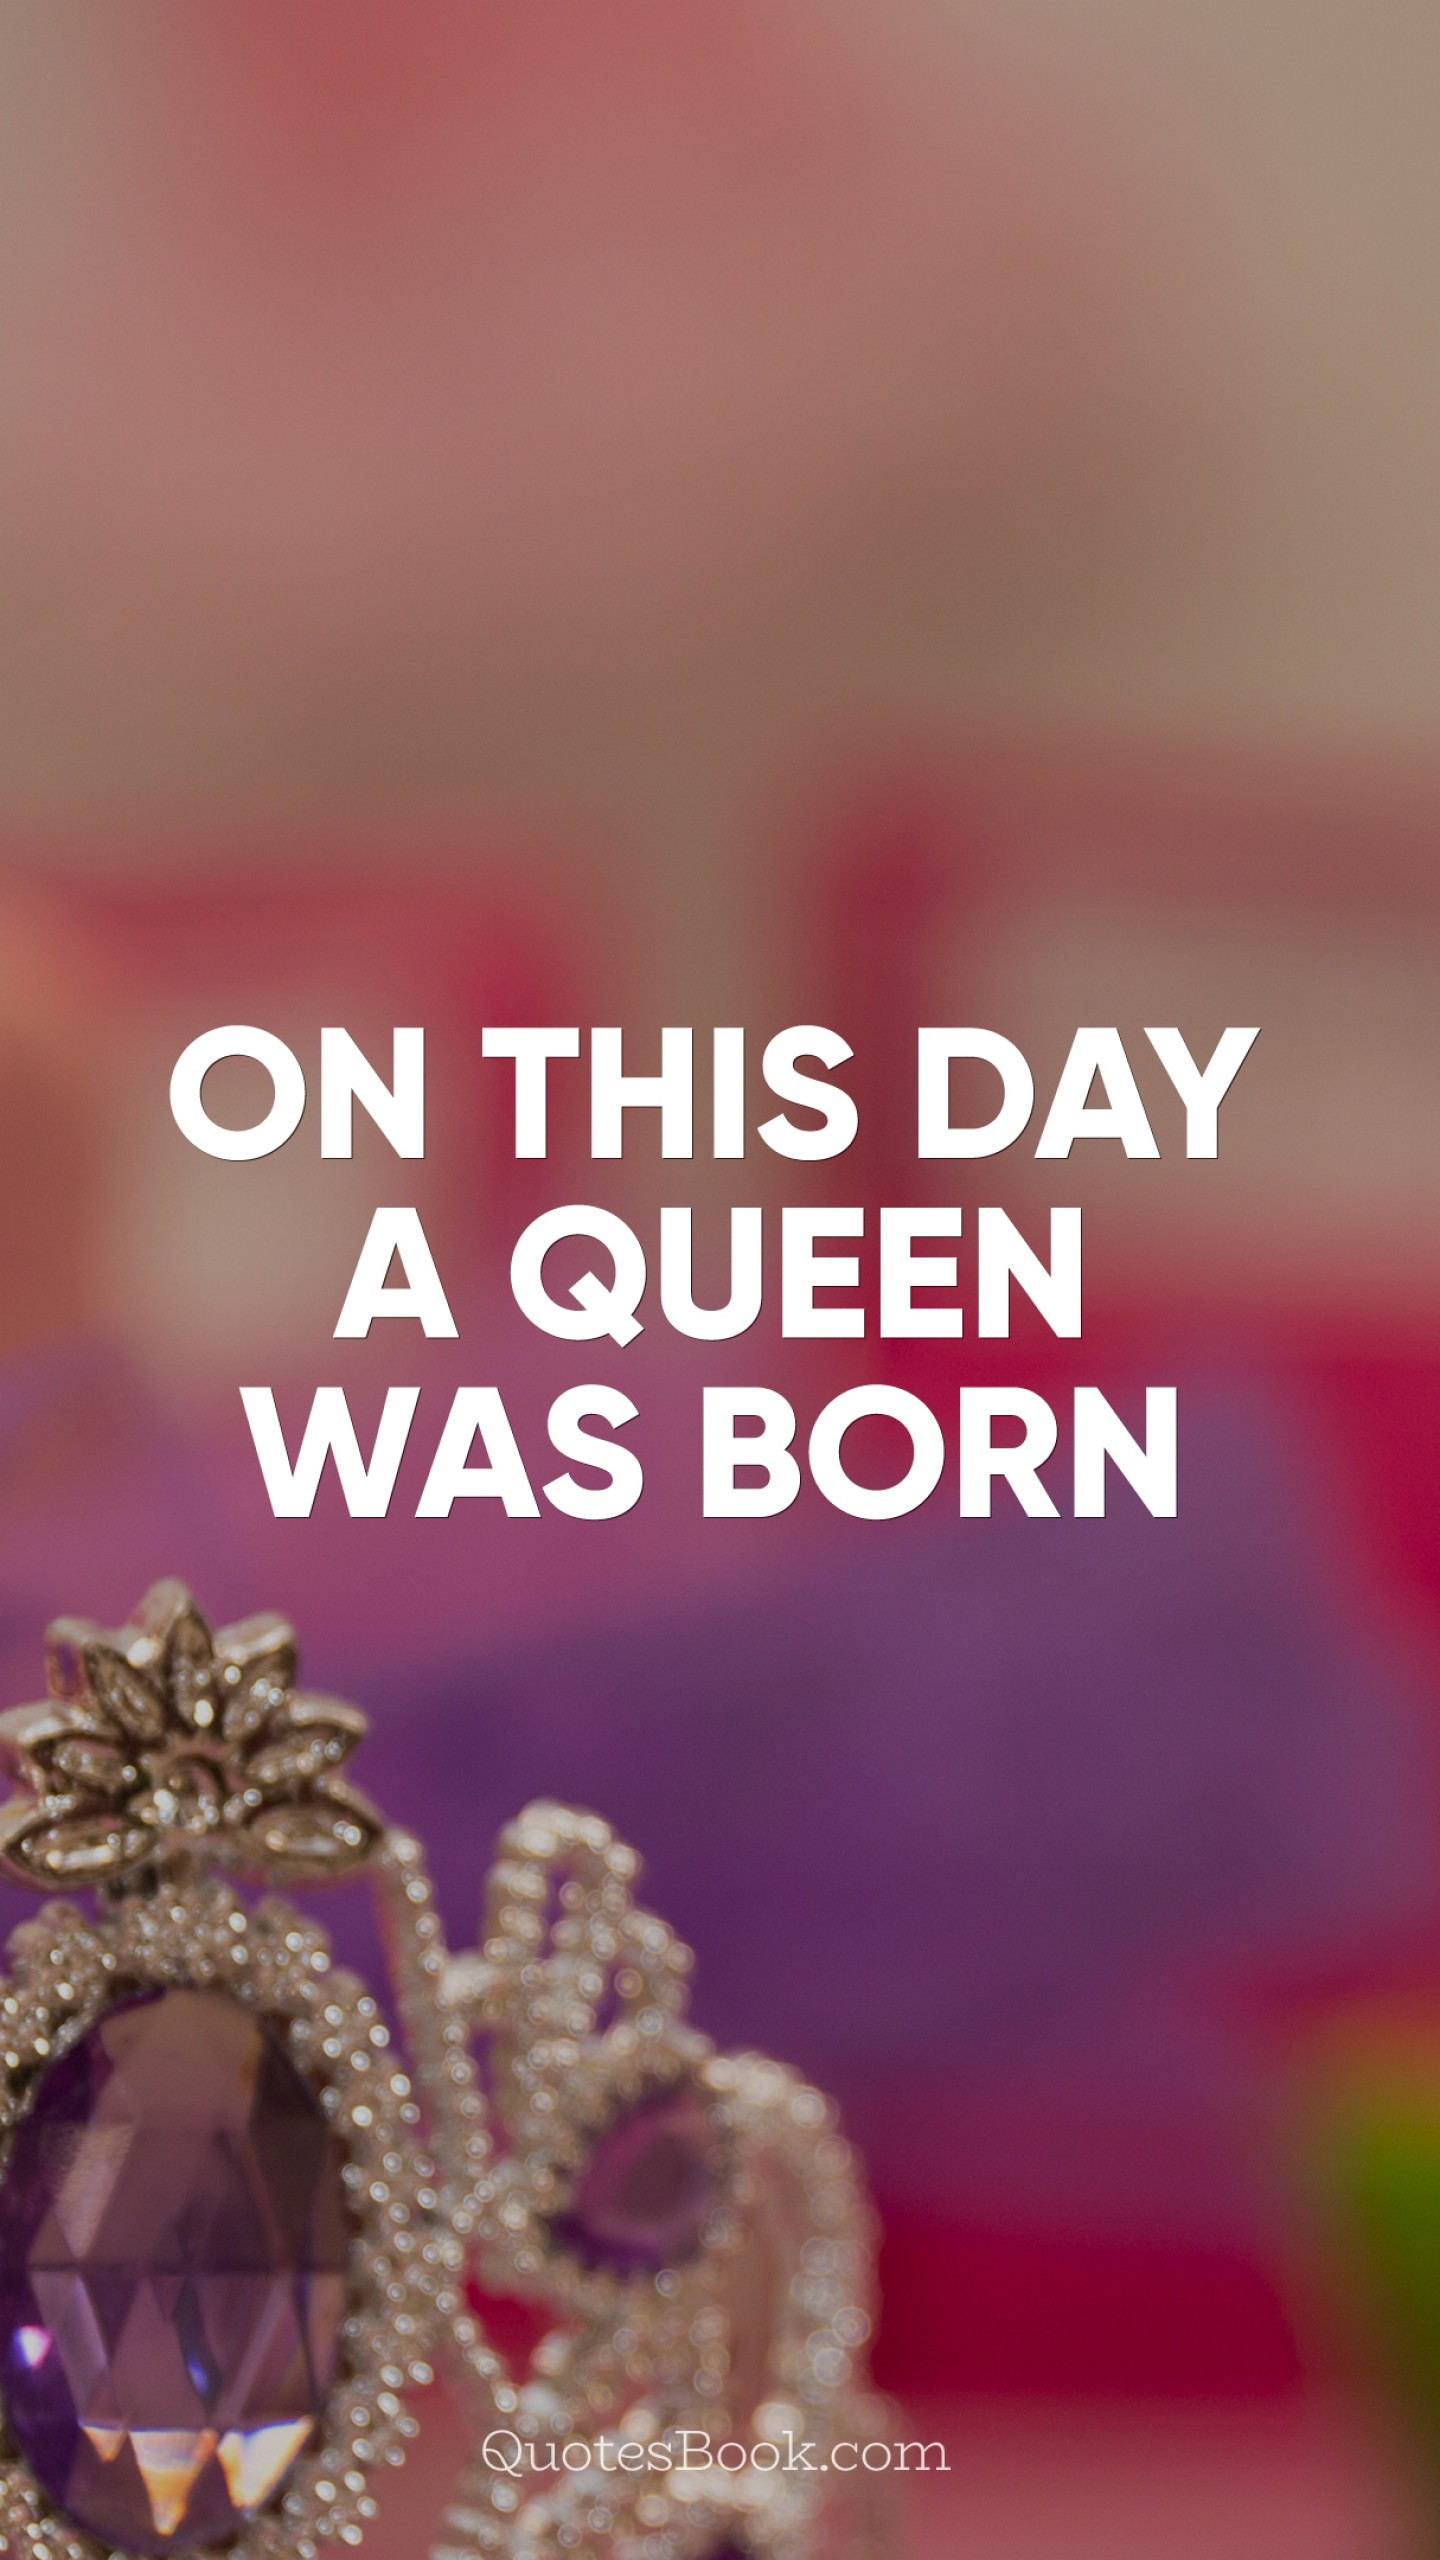 On this day a queen was born - QuotesBook